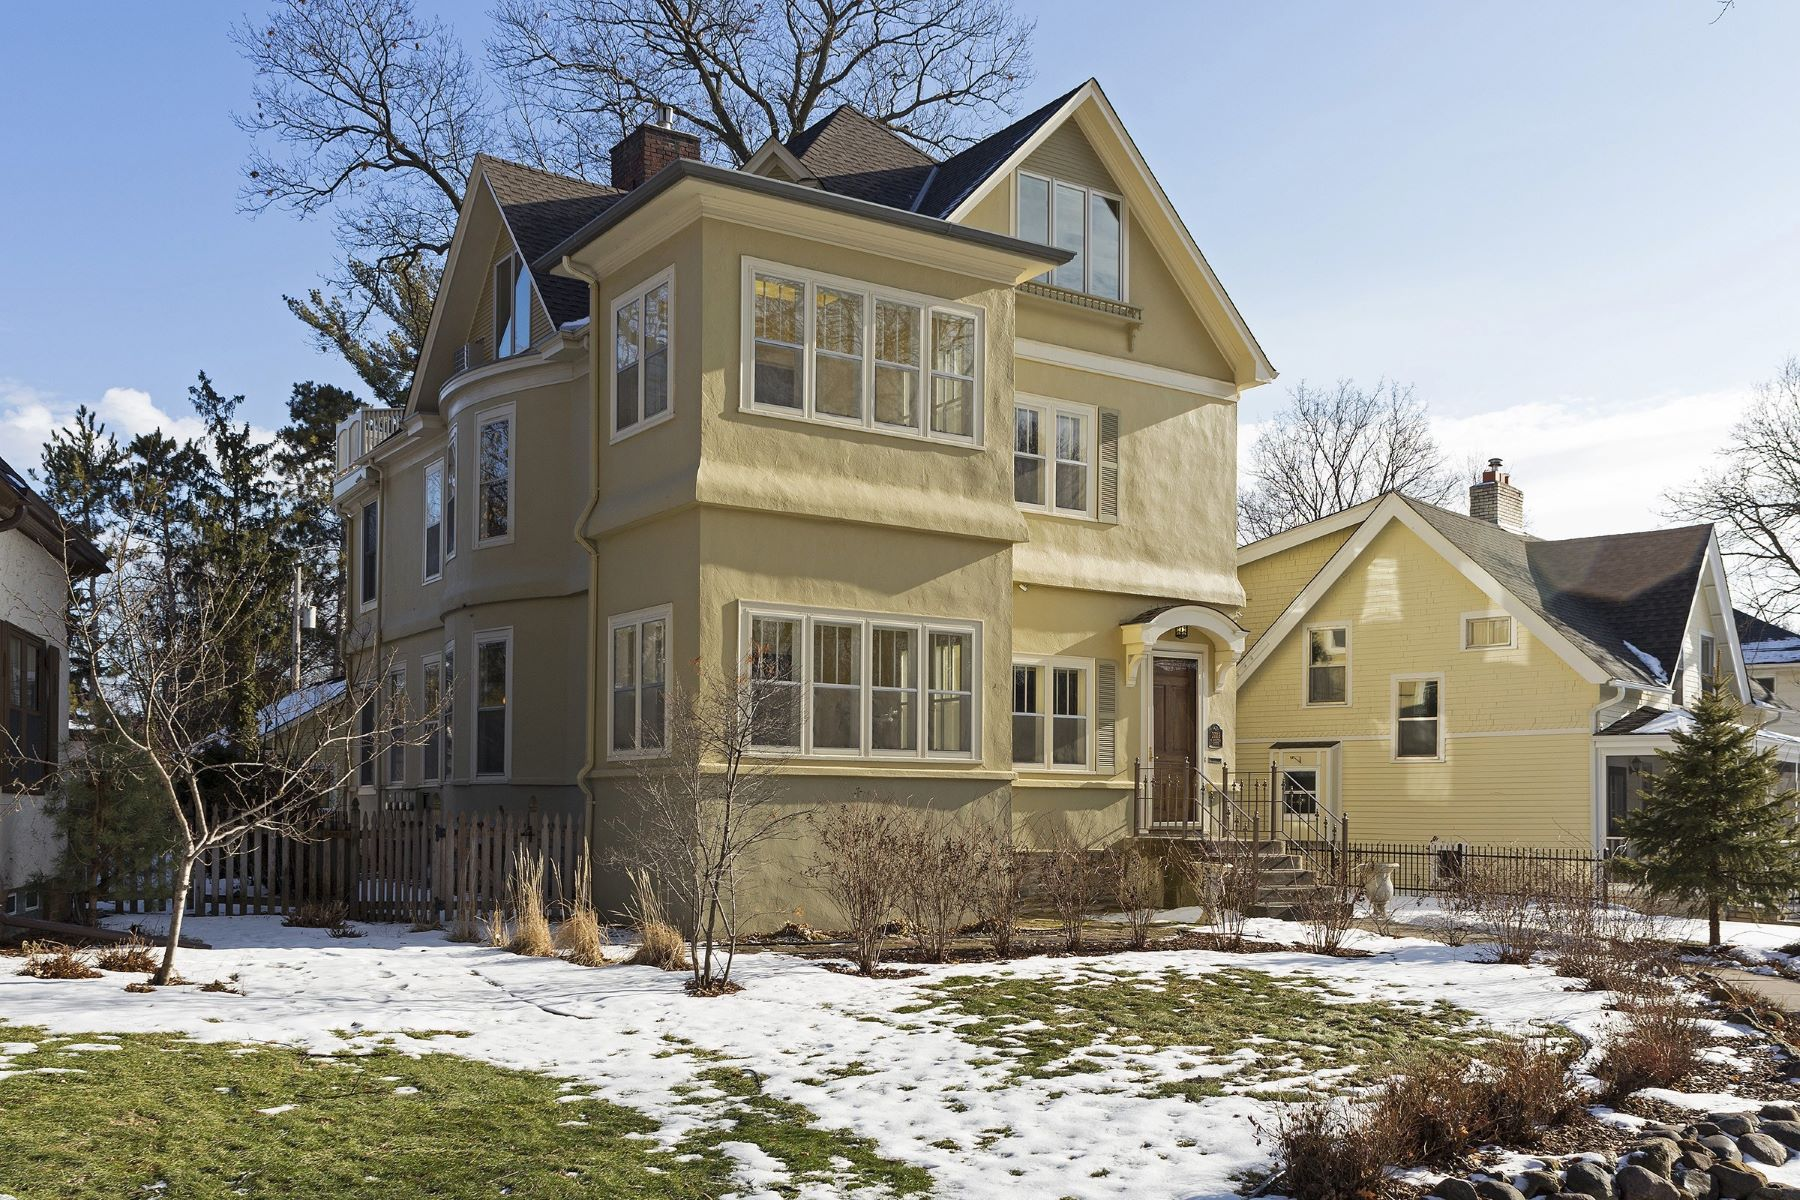 Single Family Home for Sale at 203 Sheridan Ave S 2003 Sheridan Ave S Kenwood, Minneapolis, Minnesota, 55405 United States